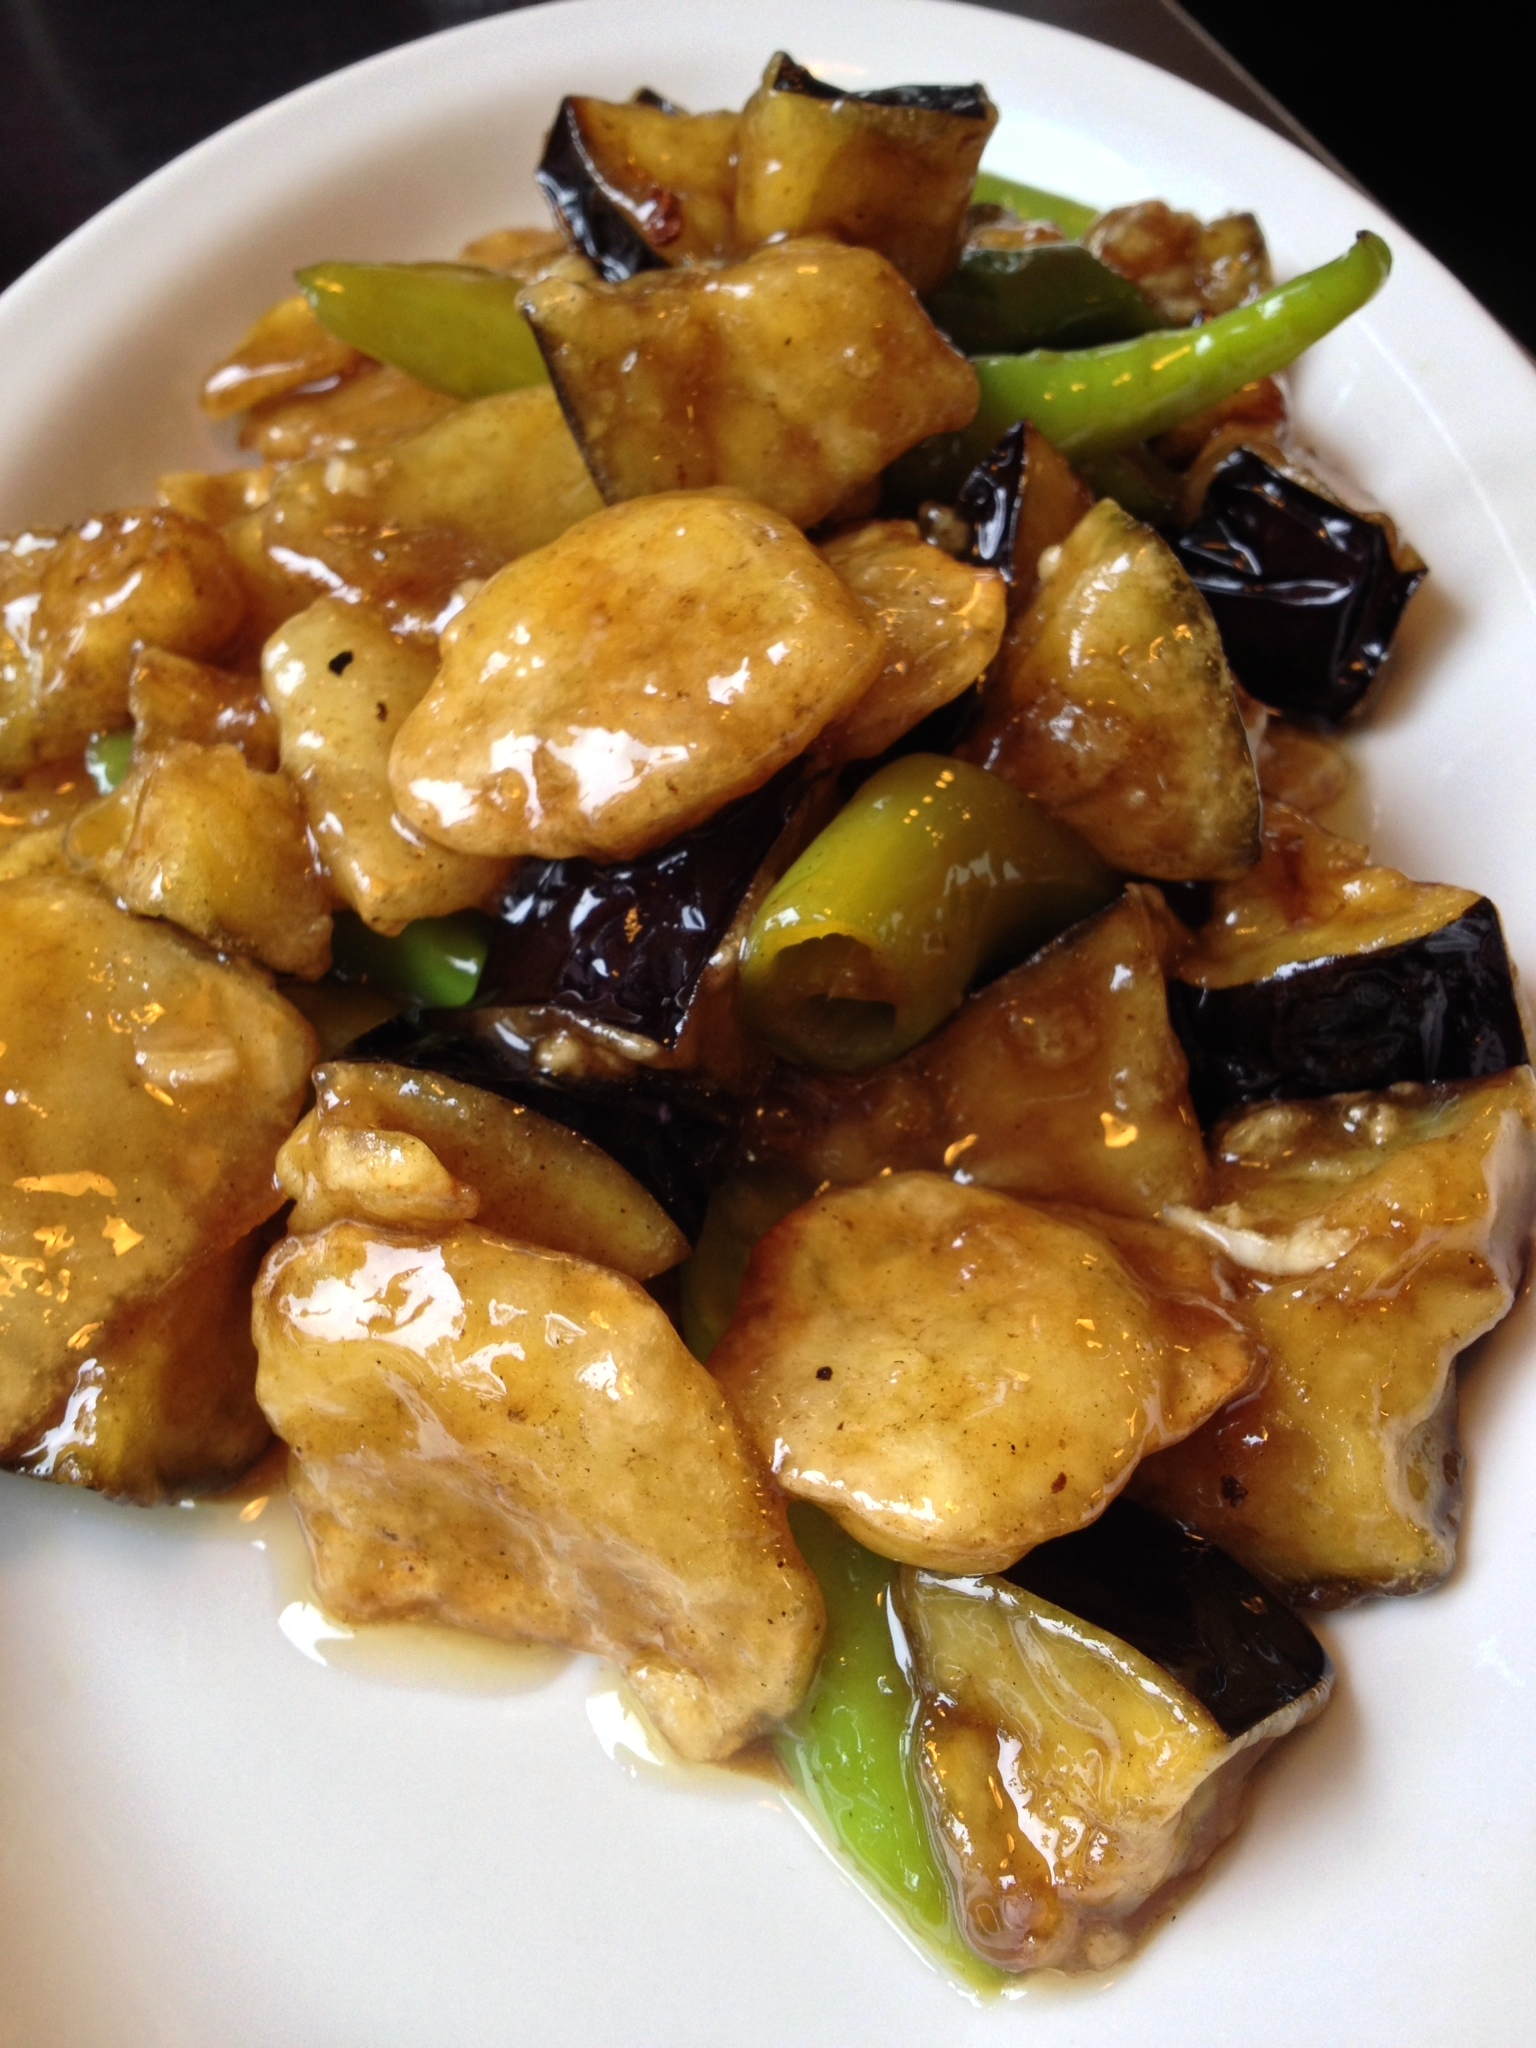 Eggplant with fried potatoes and peppers -- a slight variation on my favorite eggplant and peppers